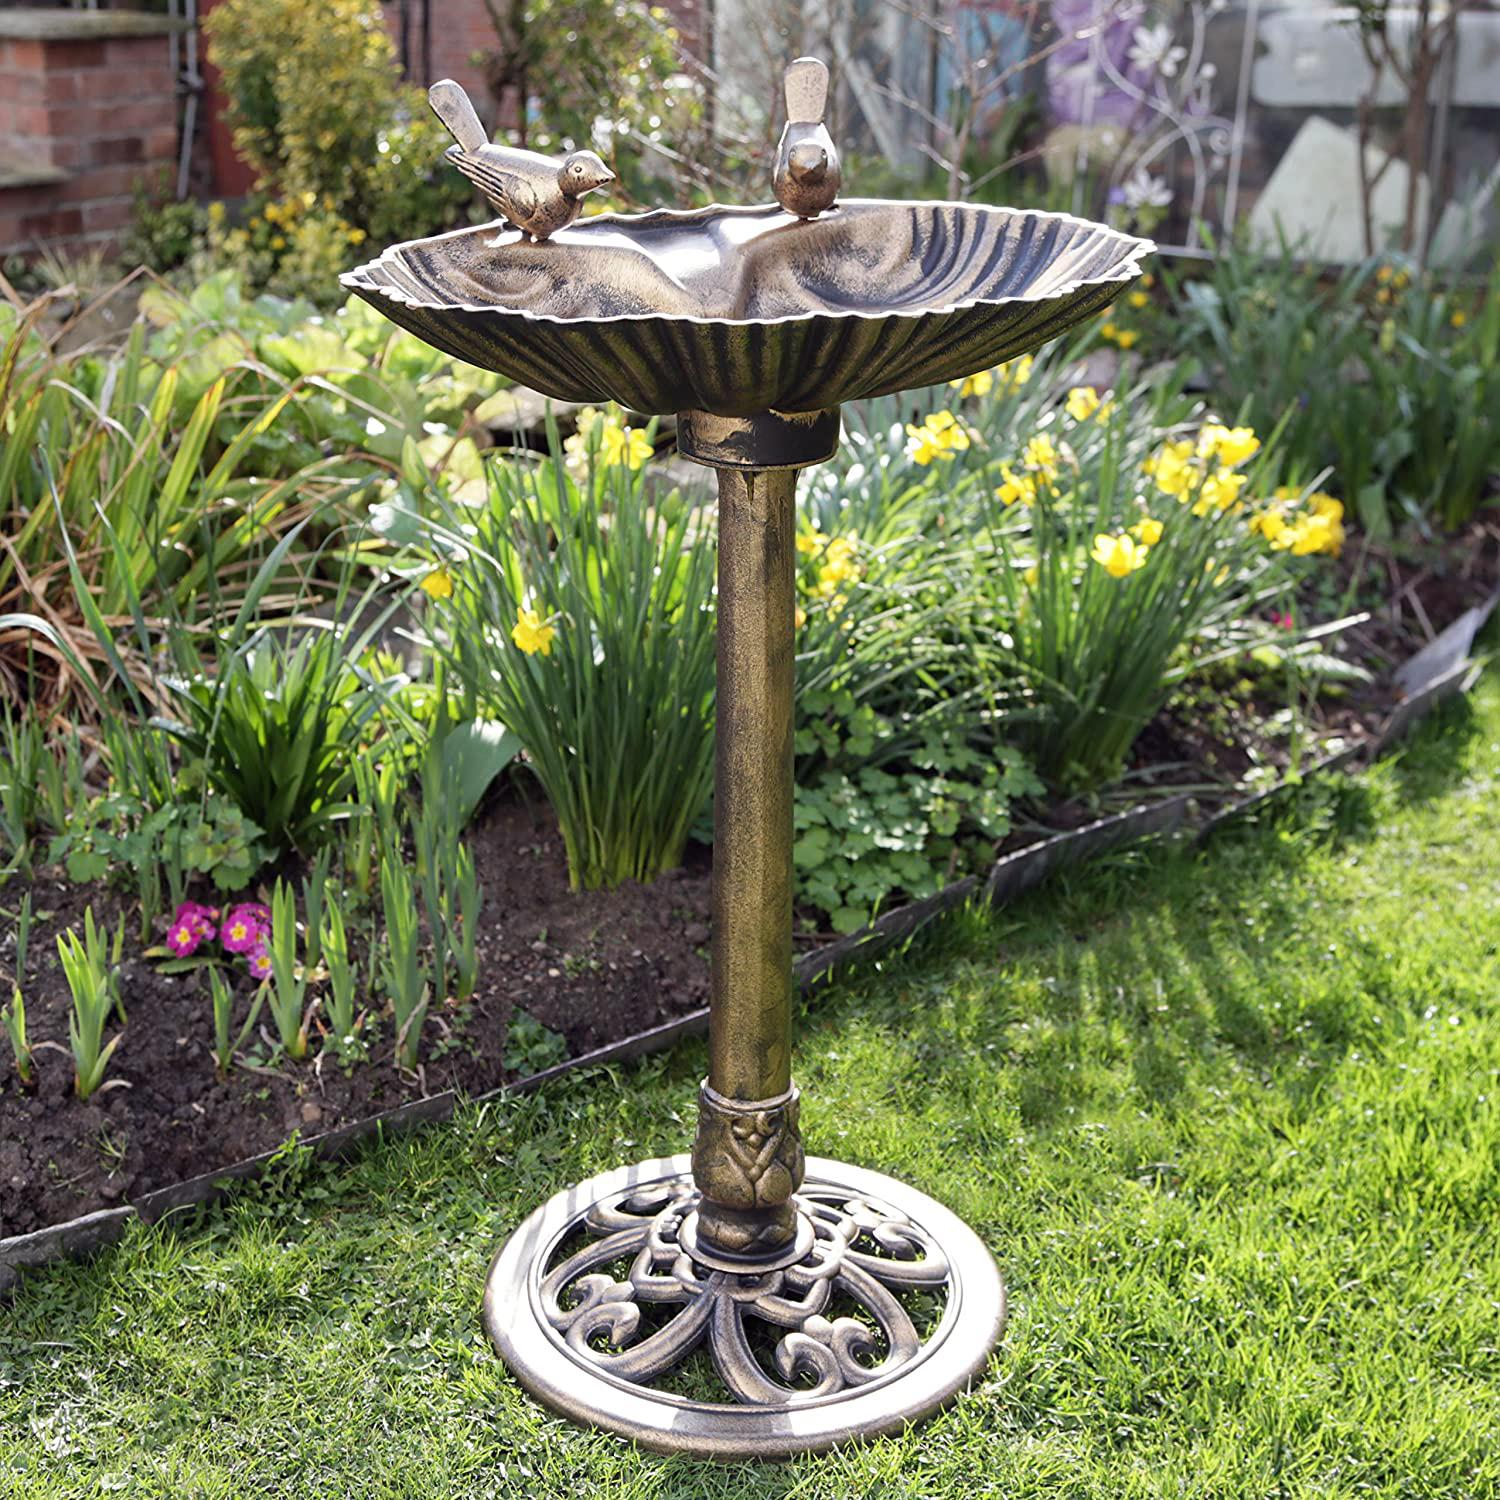 Bird-Bath-Feeder-Bowl-With-Solar-Light-Garden-amp-Patio-Bird-Feeding-Table-Station thumbnail 15